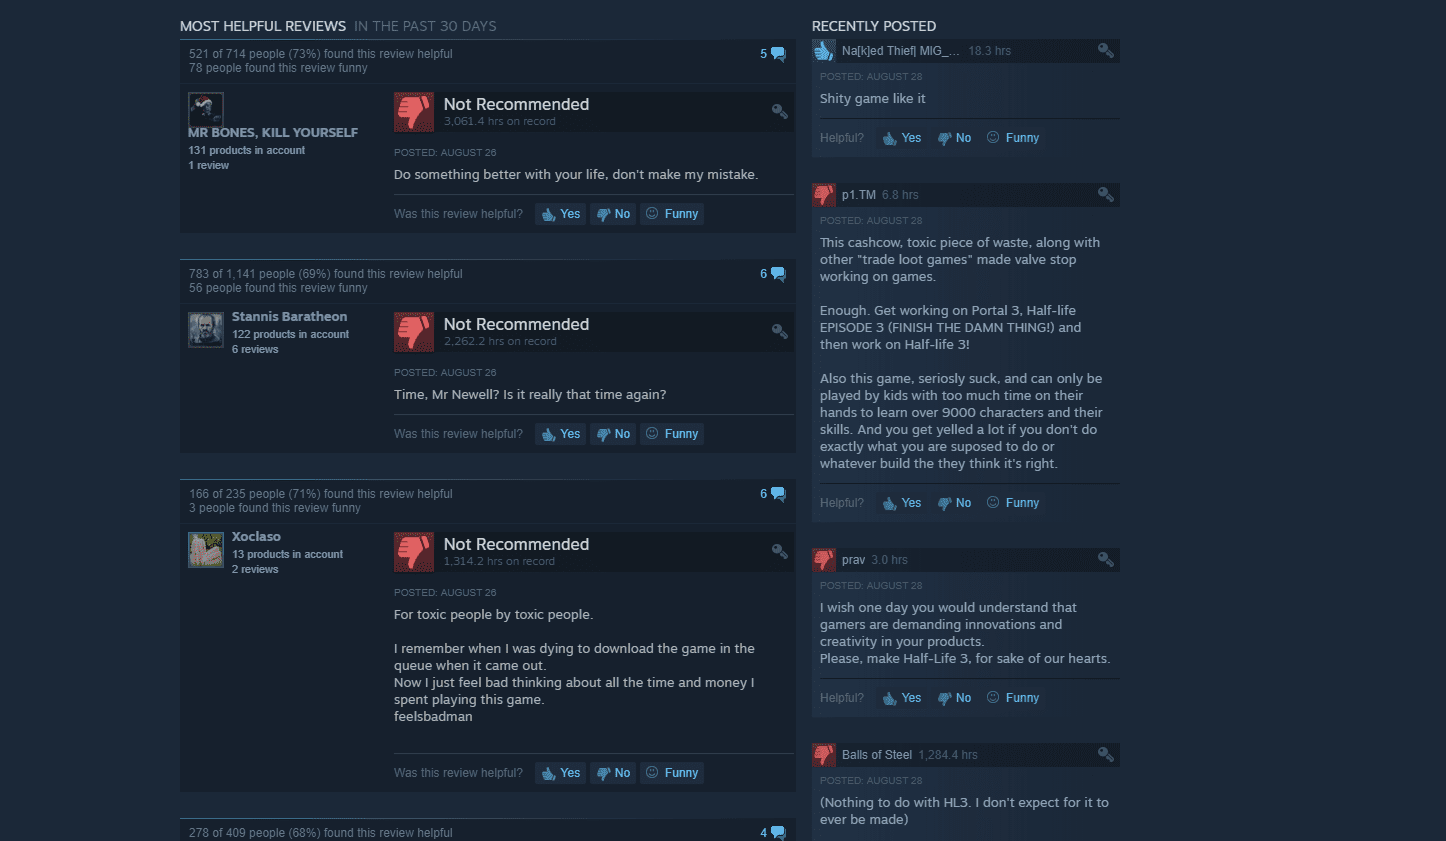 dota 2 is getting negative reviews on steam because of half life 3